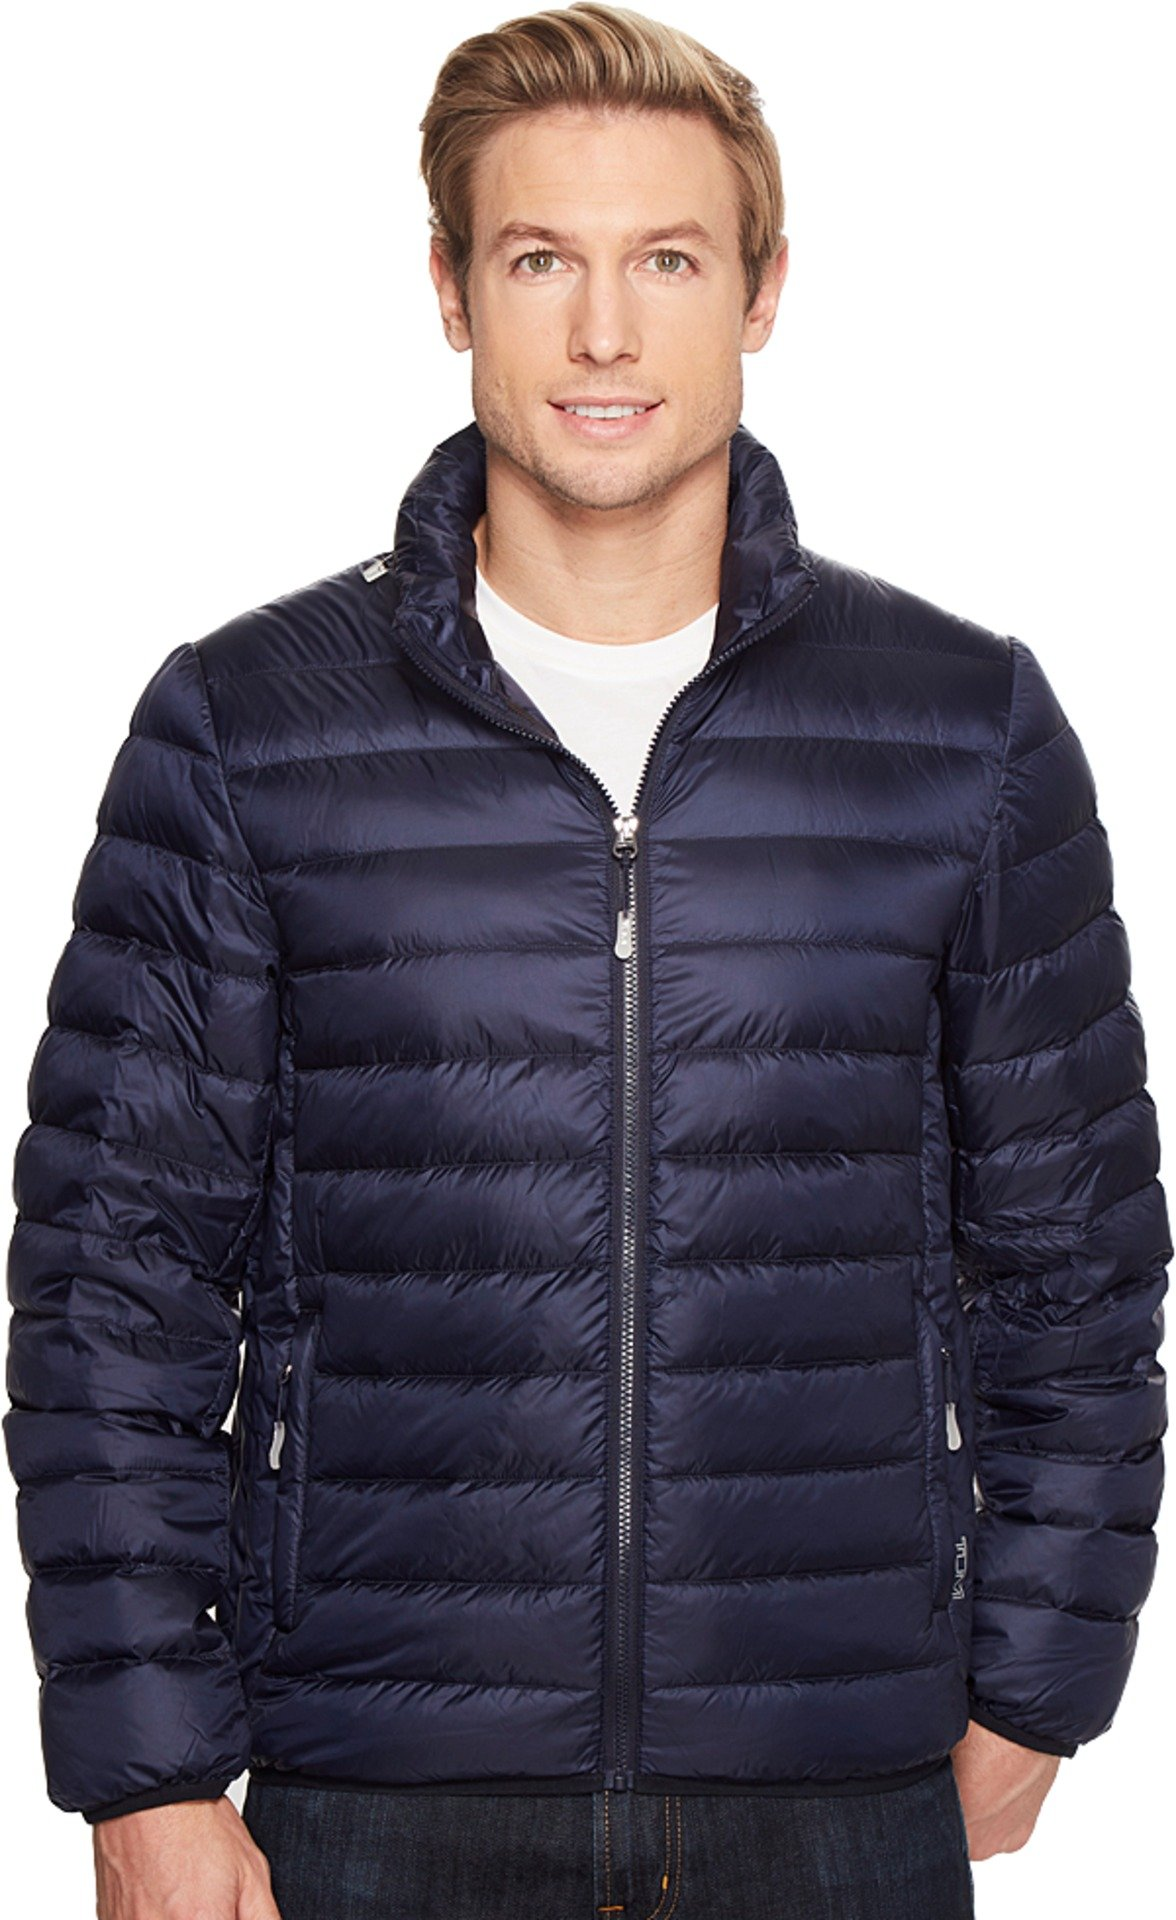 Tumi Men's Patrol Packable Travel Puffer Jacket Navy Outerwear